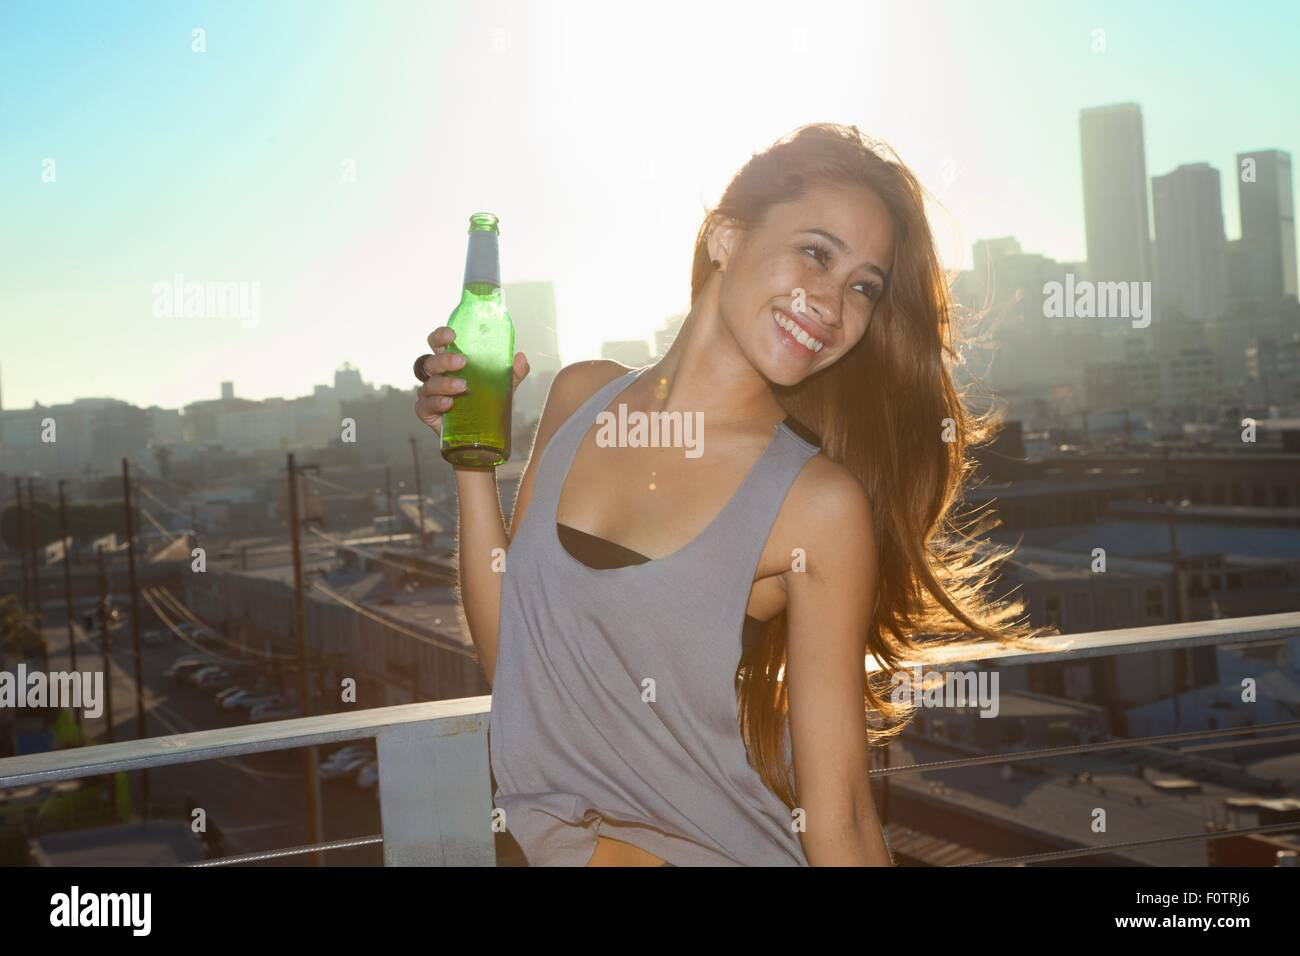 Portrait of young woman drinking beer on rooftop bar with Los Angeles skyline, USA - Stock Image